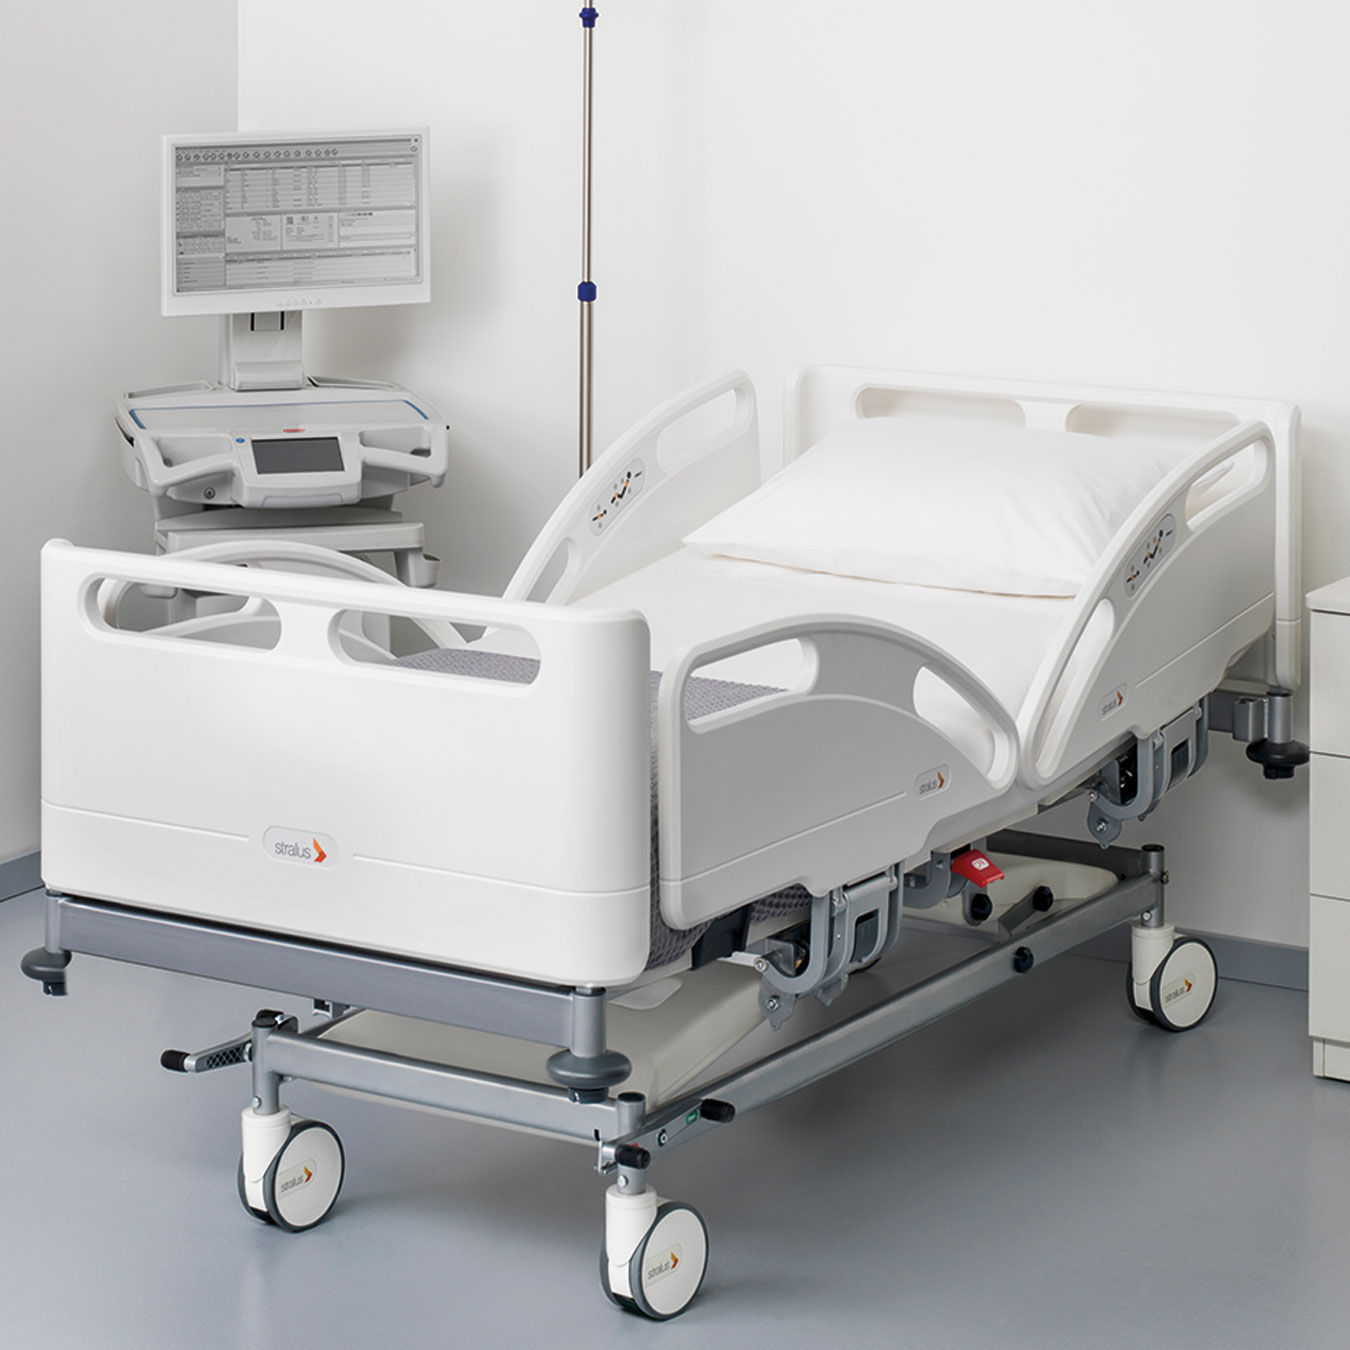 STRWARDC230-Stralus-C230-Hospital-Ward-Bed-Image-File-1.1_v1